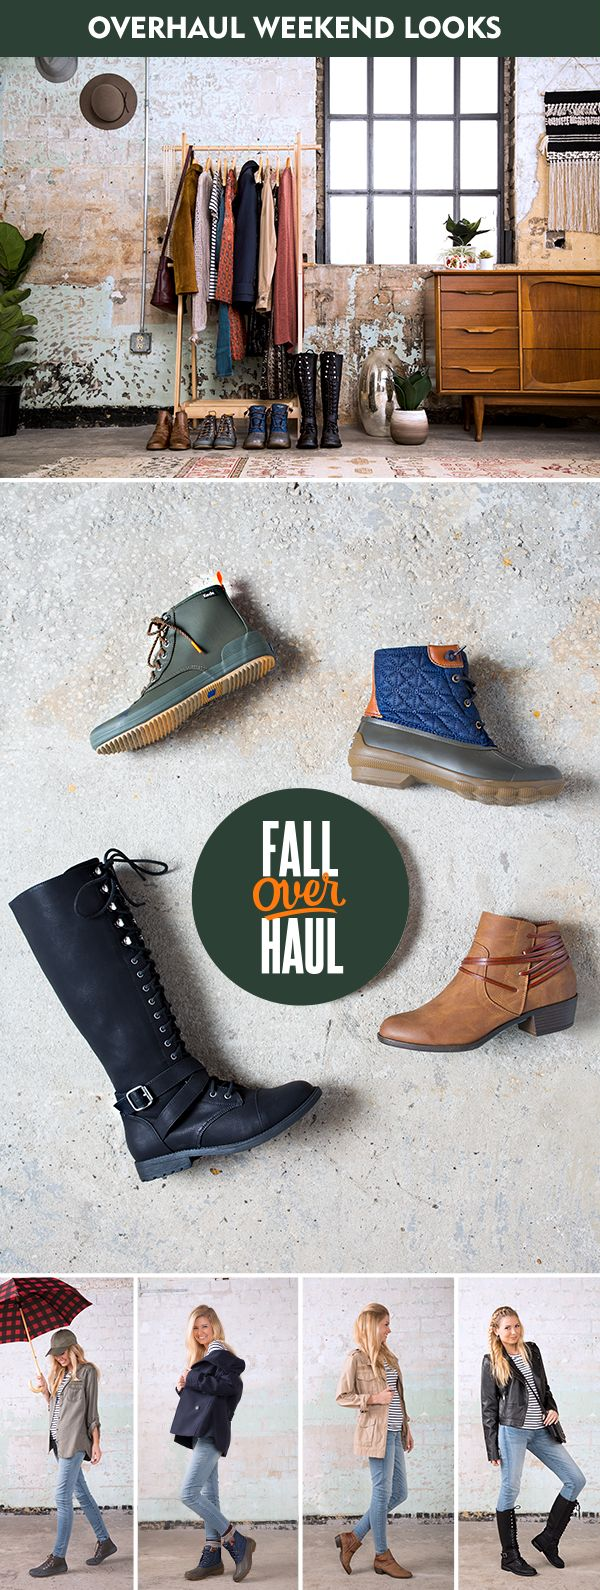 Overhaul your fall weekend look with boots that are ready for all your plans! Stay stylish and dry with an umbrella and waterproof �Scout� boots from Keds, or warm and cozy with a coat and waterproof �Syren Gulf� boots from Sperry. Grab coffee in a light jacket and Madden Girl �Become� brown booties or just feel fierce in a moto jacket and David Aaron�s �Dessy� black lace-up boots.